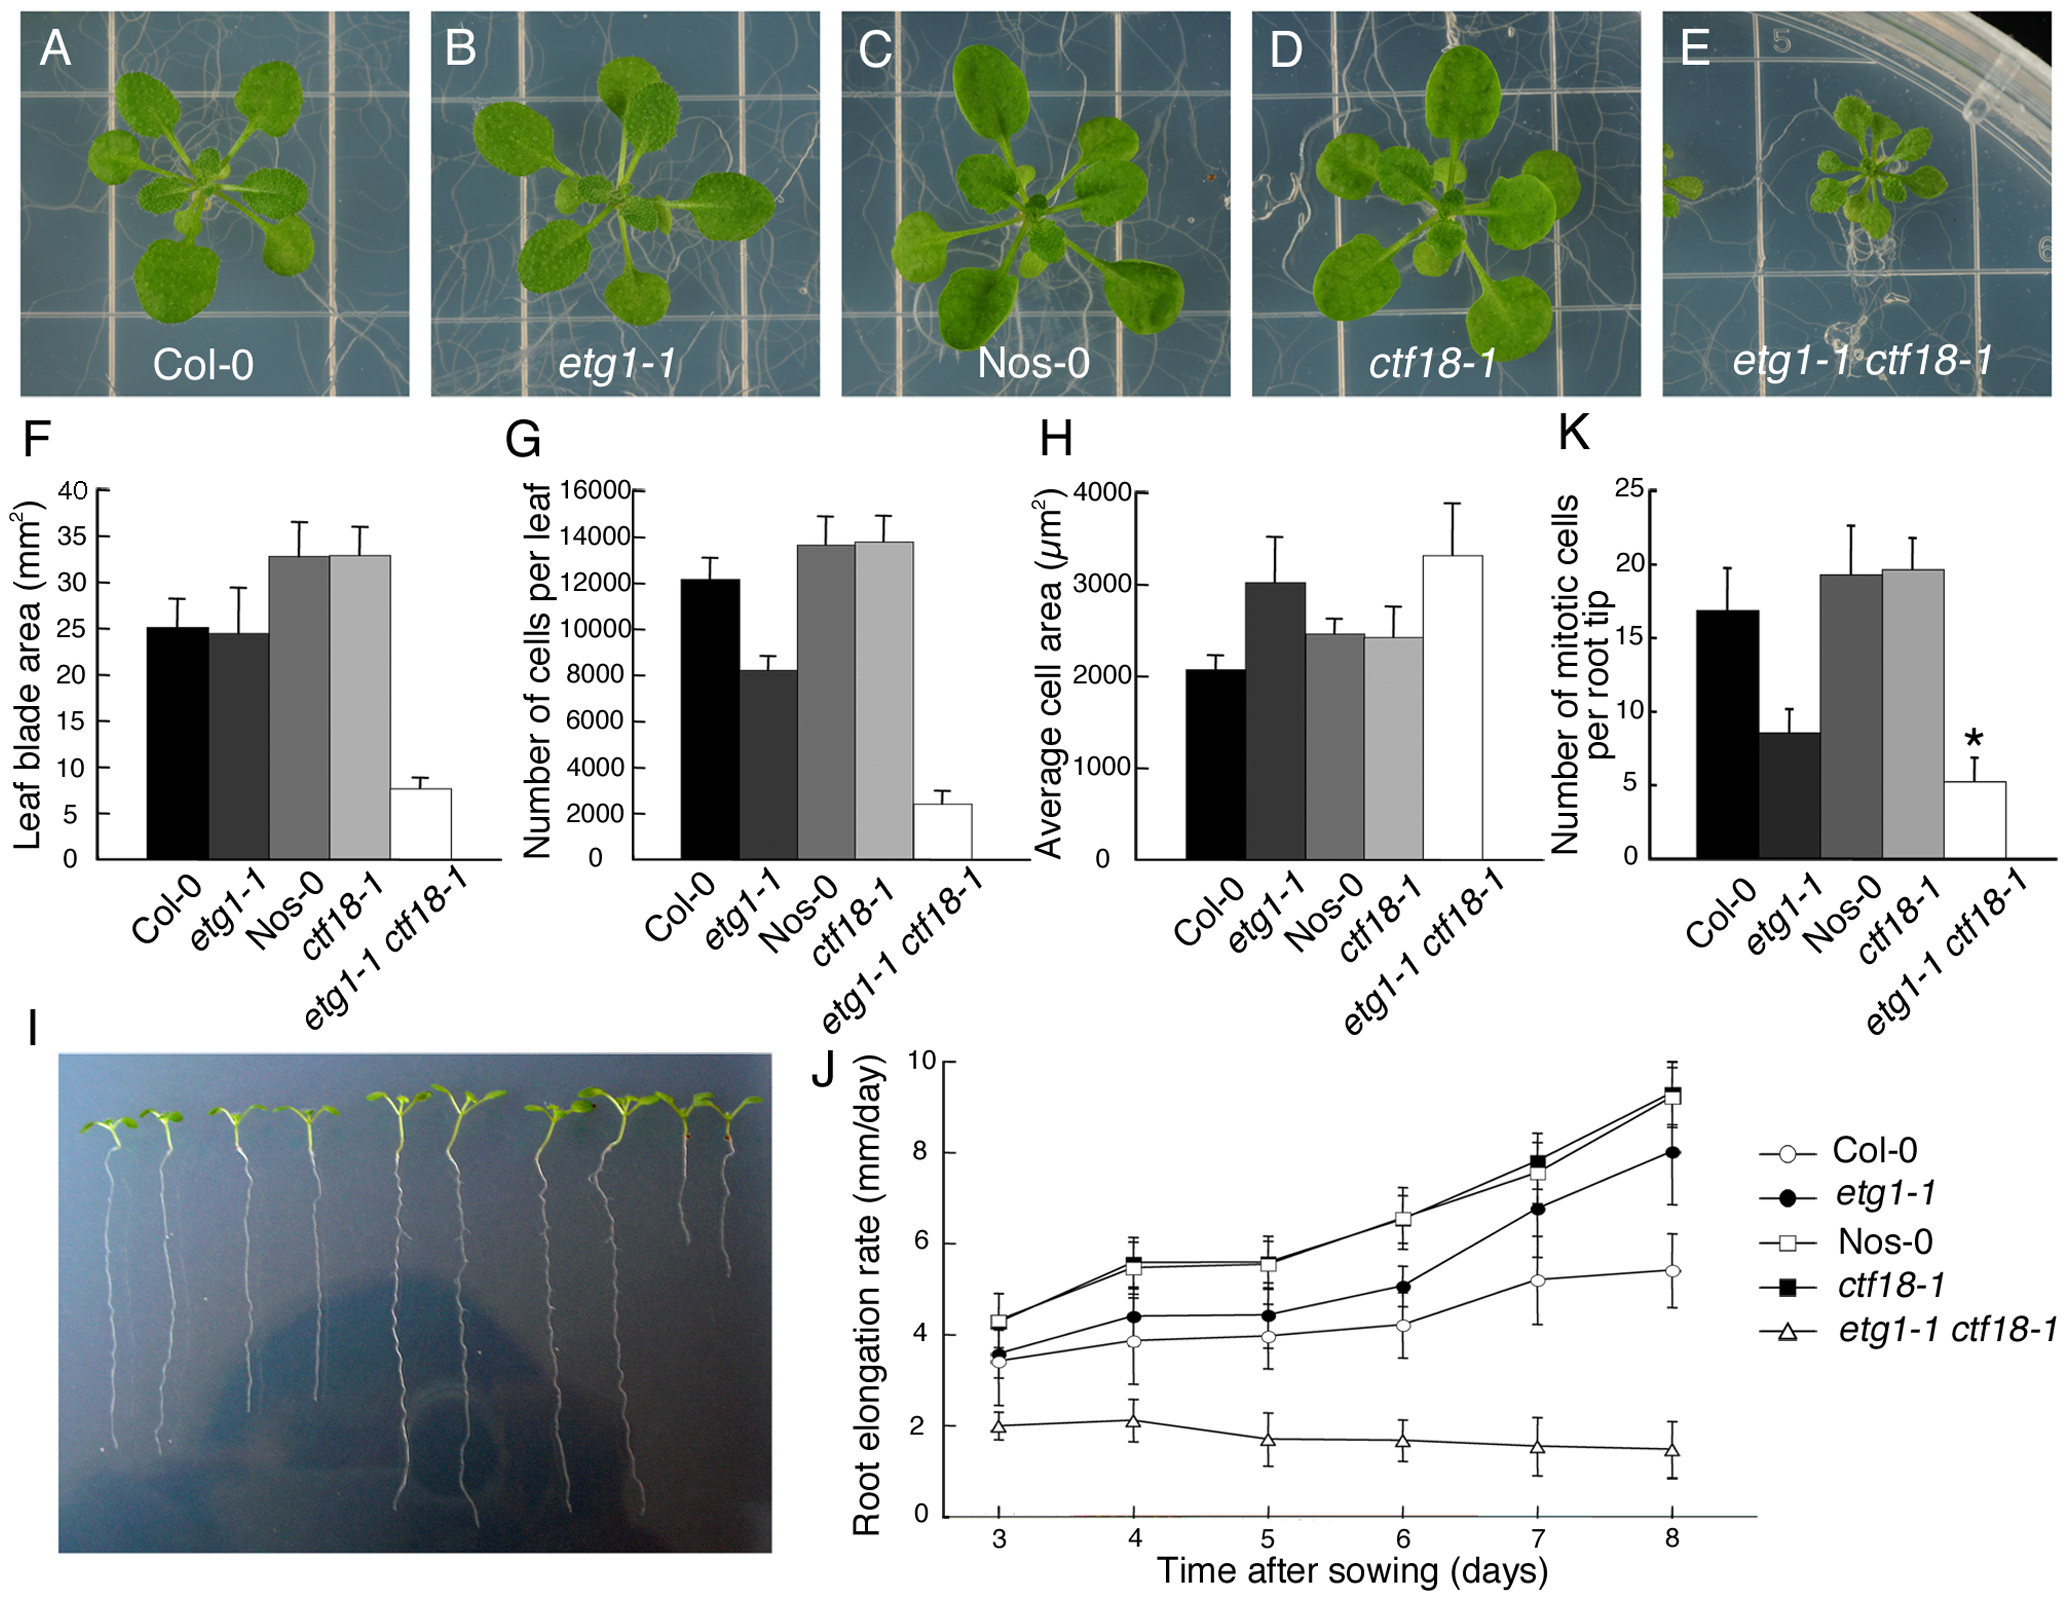 Inhibition of plant growth by loss of sister chromatid cohesion.